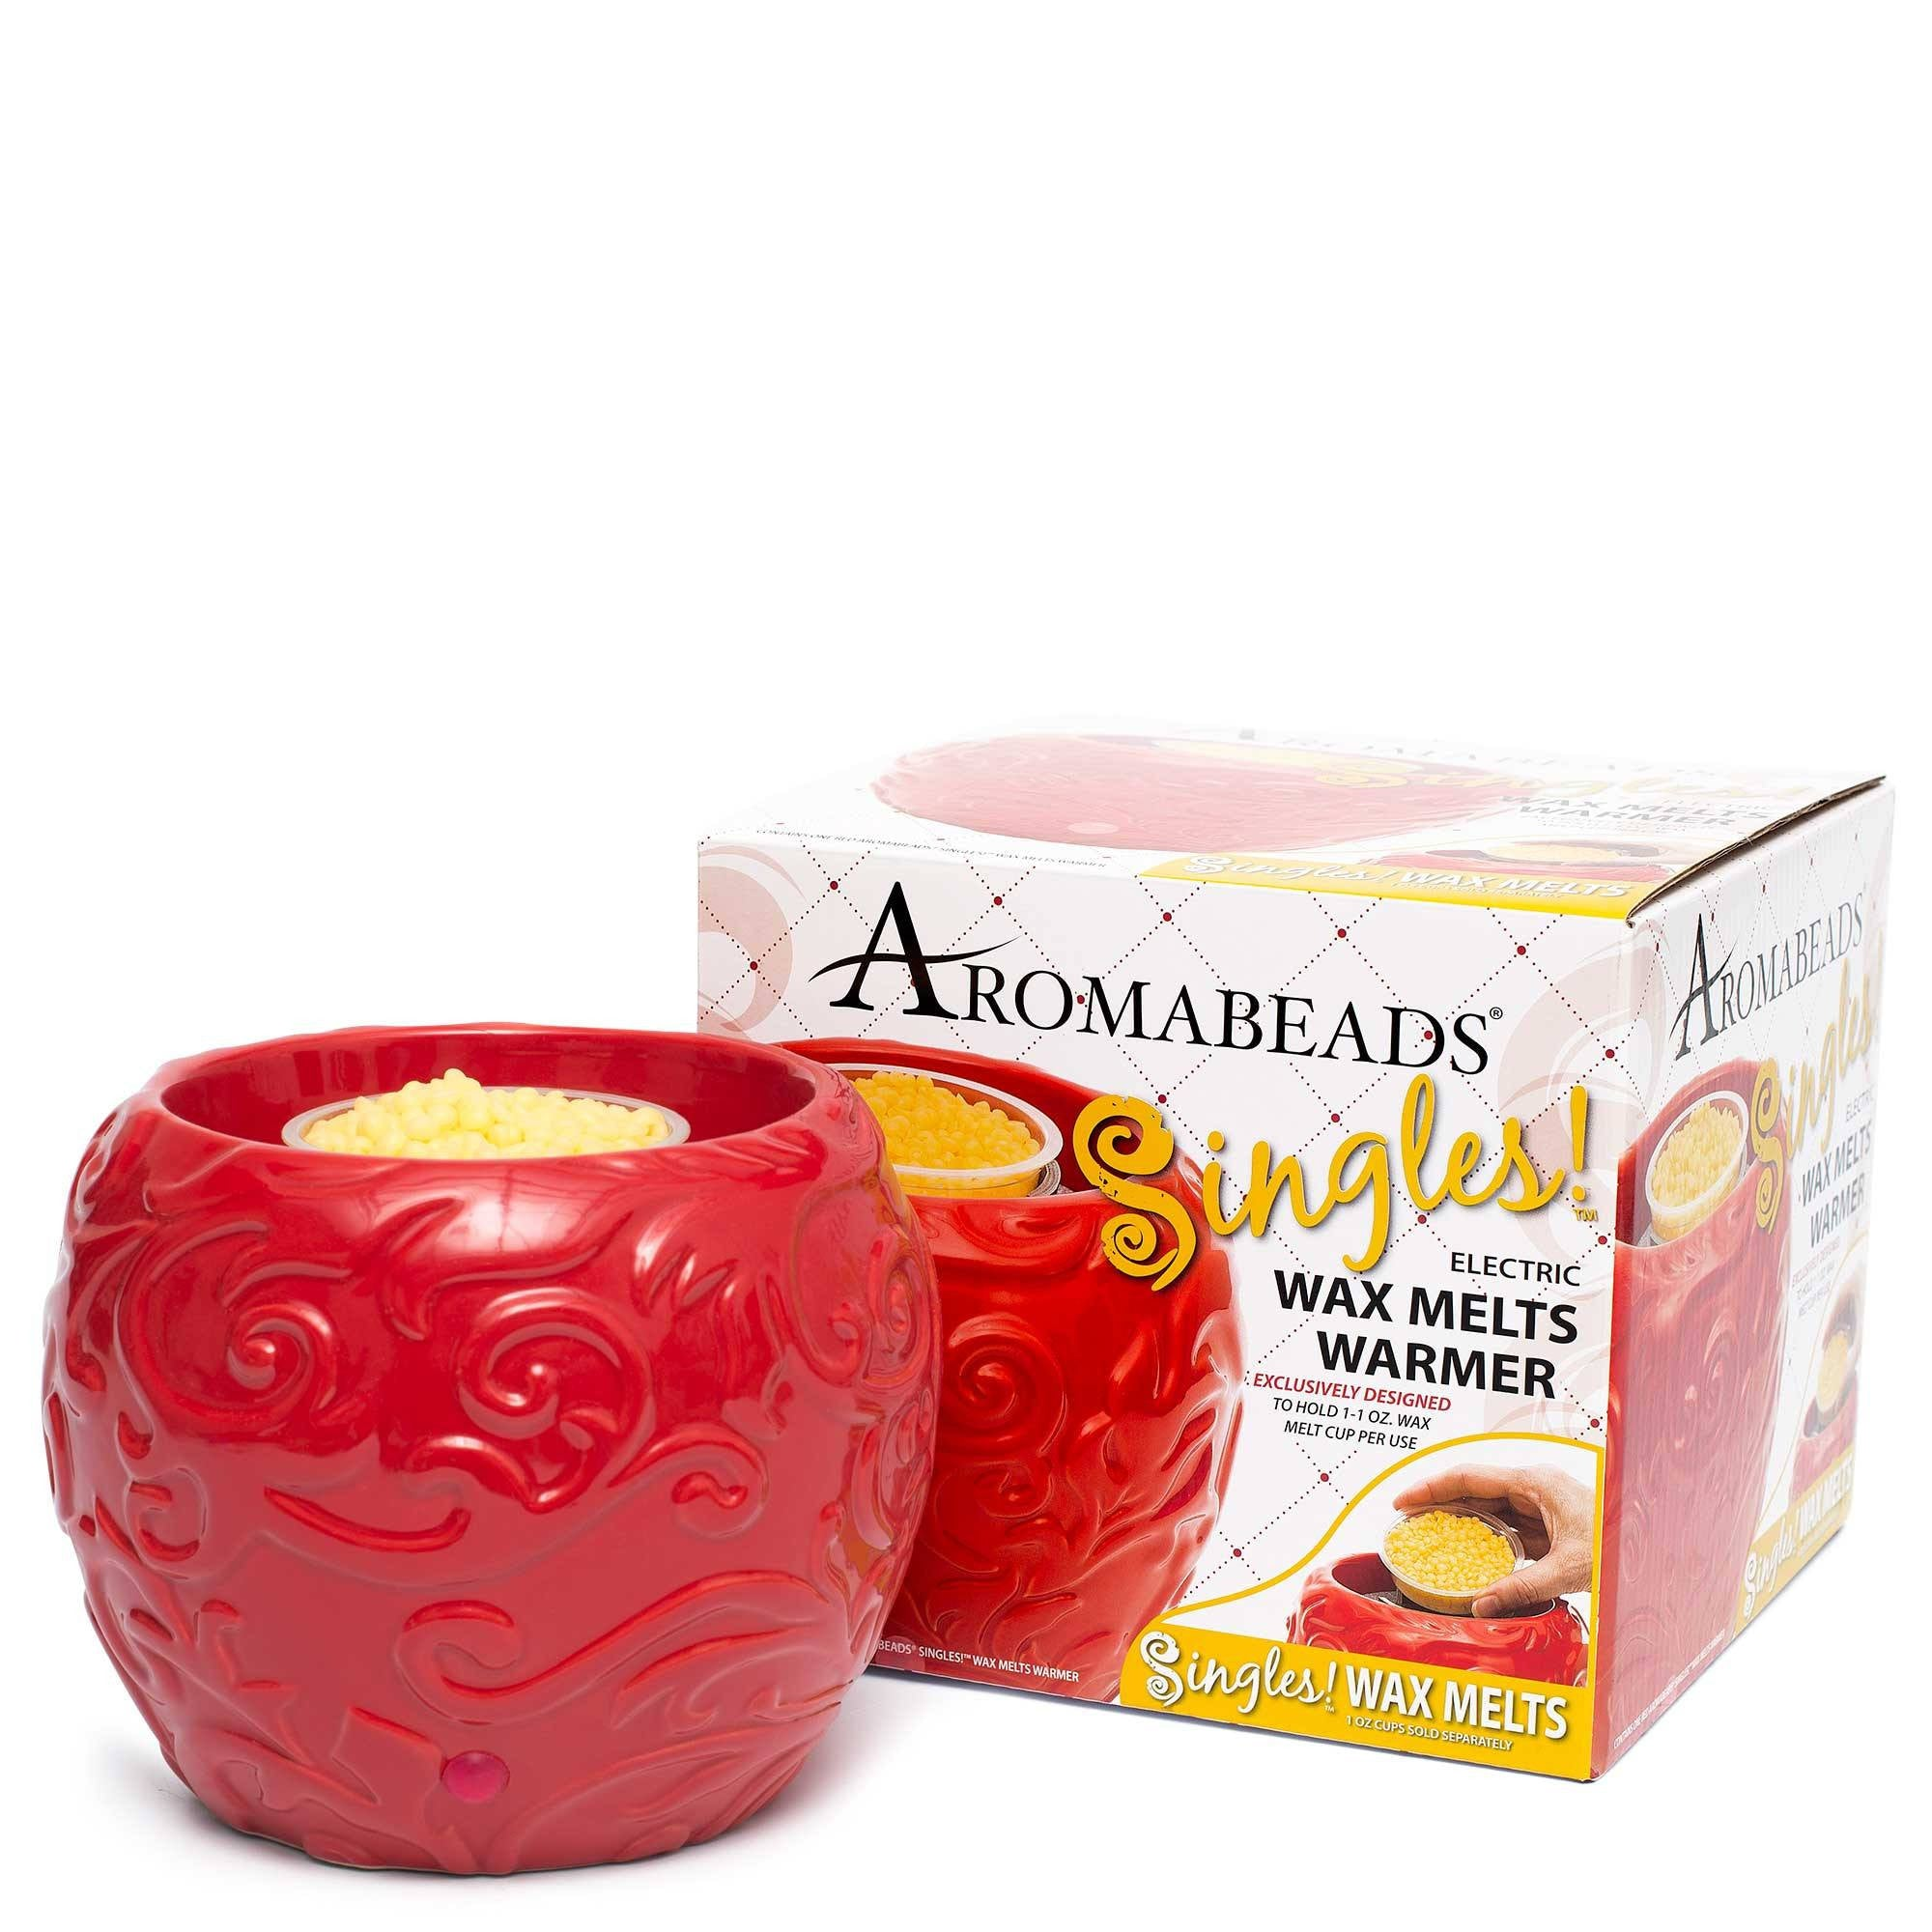 Aromabeads Singles Blue Sapphire Scented Wax Melts - Candlemart.com - 3